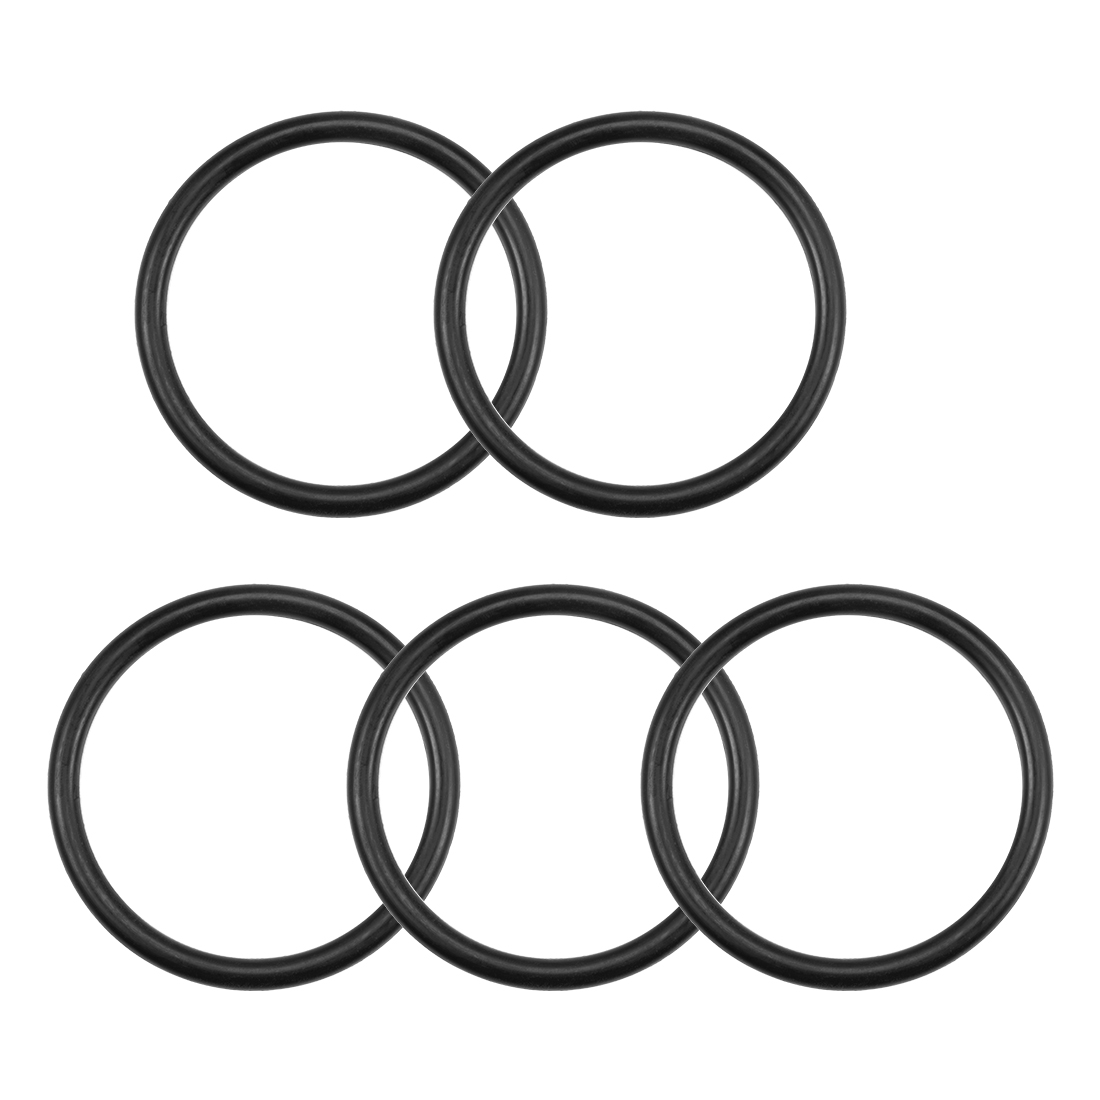 O-Rings Nitrile Rubber 61.6mm x 73mm x 5.7mm Round Seal Gasket 5 Pcs